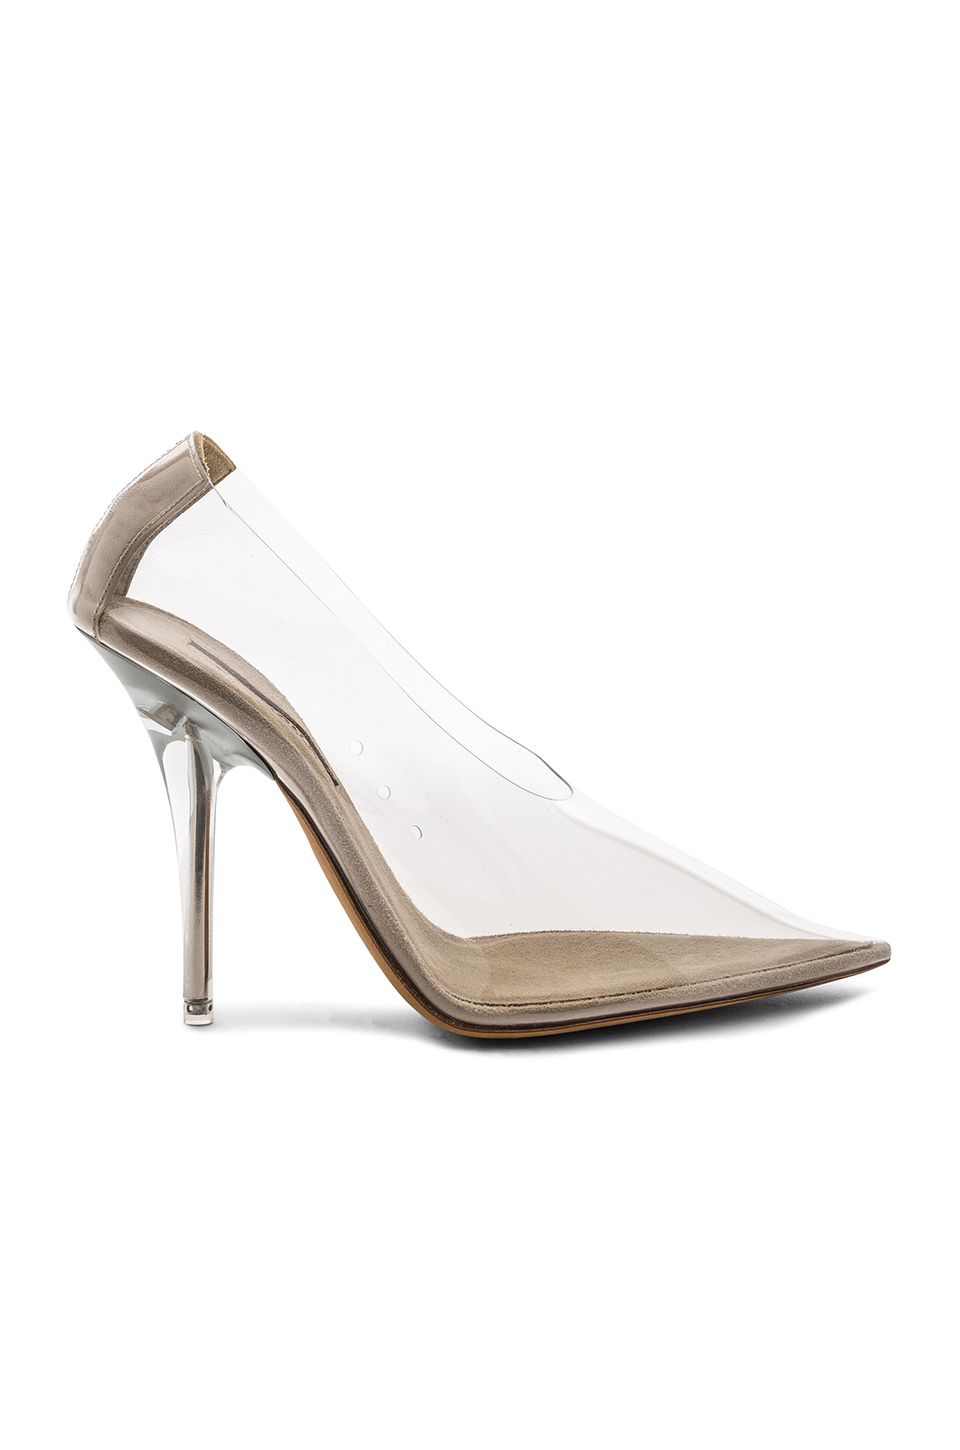 Season 5 PVC Pumps in Clear by Yeezy, available on revolve.com for $650 Kim Kardashian Shoes Exact Product